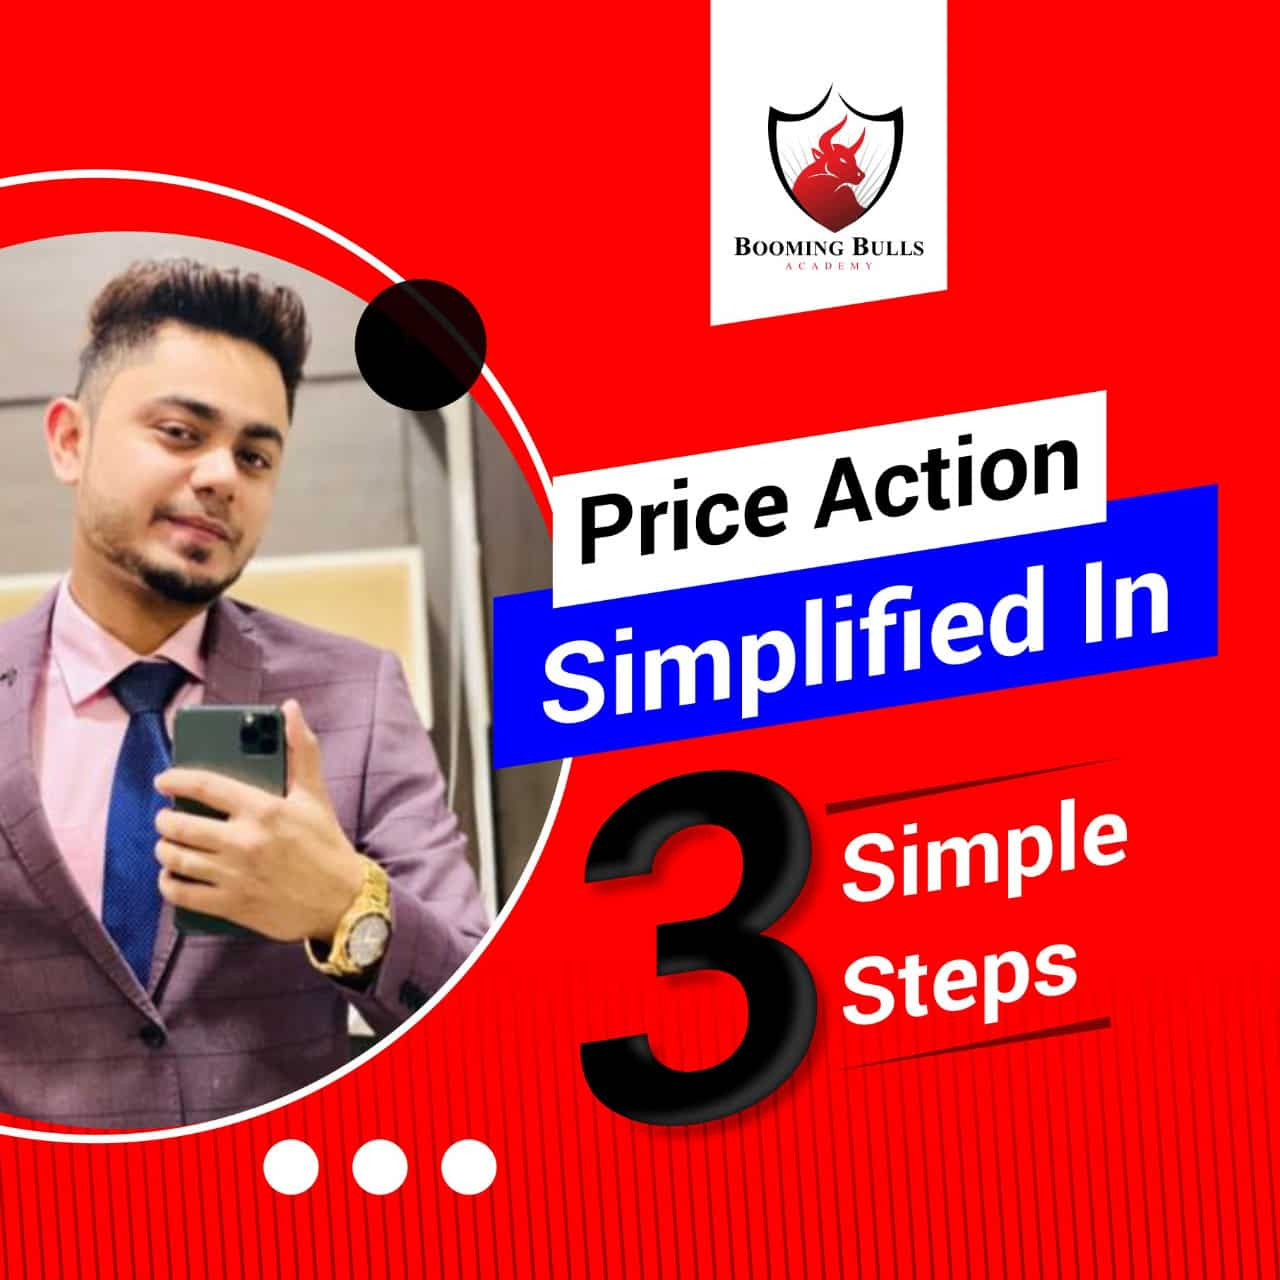 Price Action simplified in 3 simple steps by Mr. Anish Singh Thakur